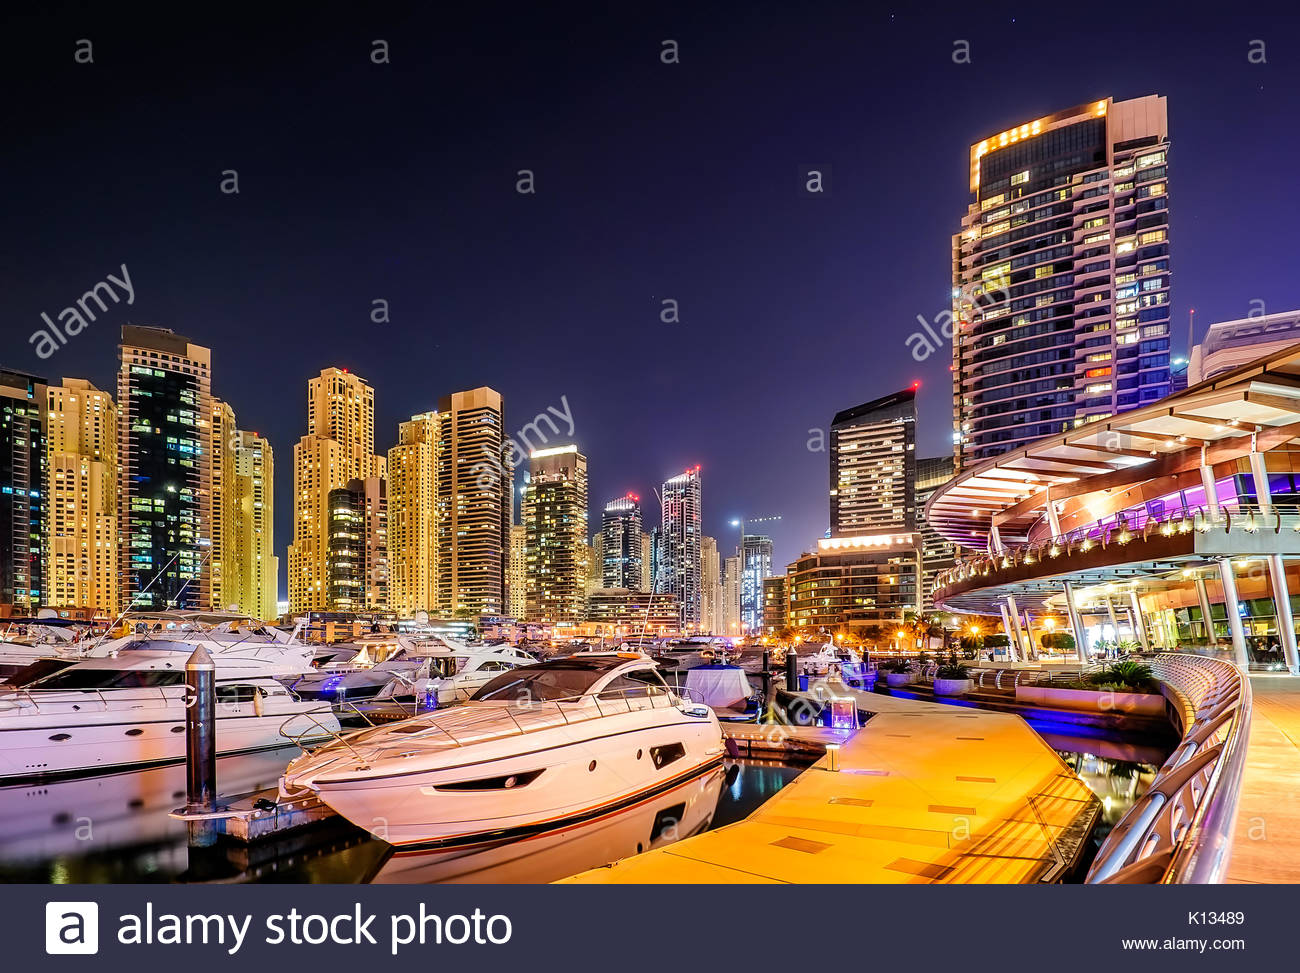 Incredible colorful night dubai marina skyline. Luxury yacht dock. Dubai, United Arab Emirates. - Stock Image